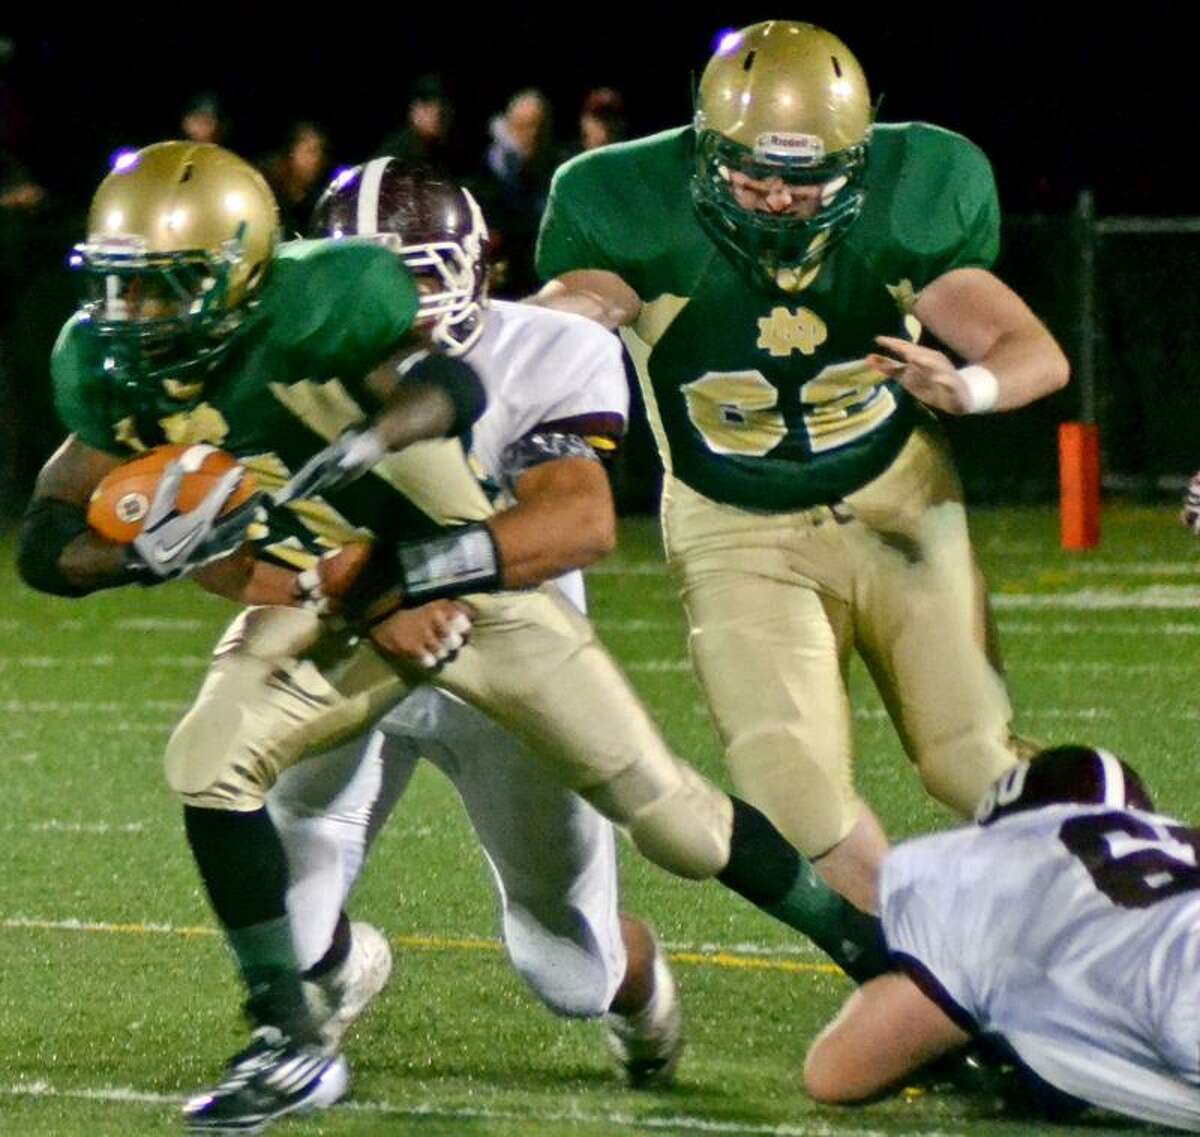 Notre Dame-West Haven running back Shawndel Evans fights for a few extra yards while trying to be taken down by North Haven offensive lineman Andrew Savenelli. Photo by Sean Meenaghan/New Haven Register.